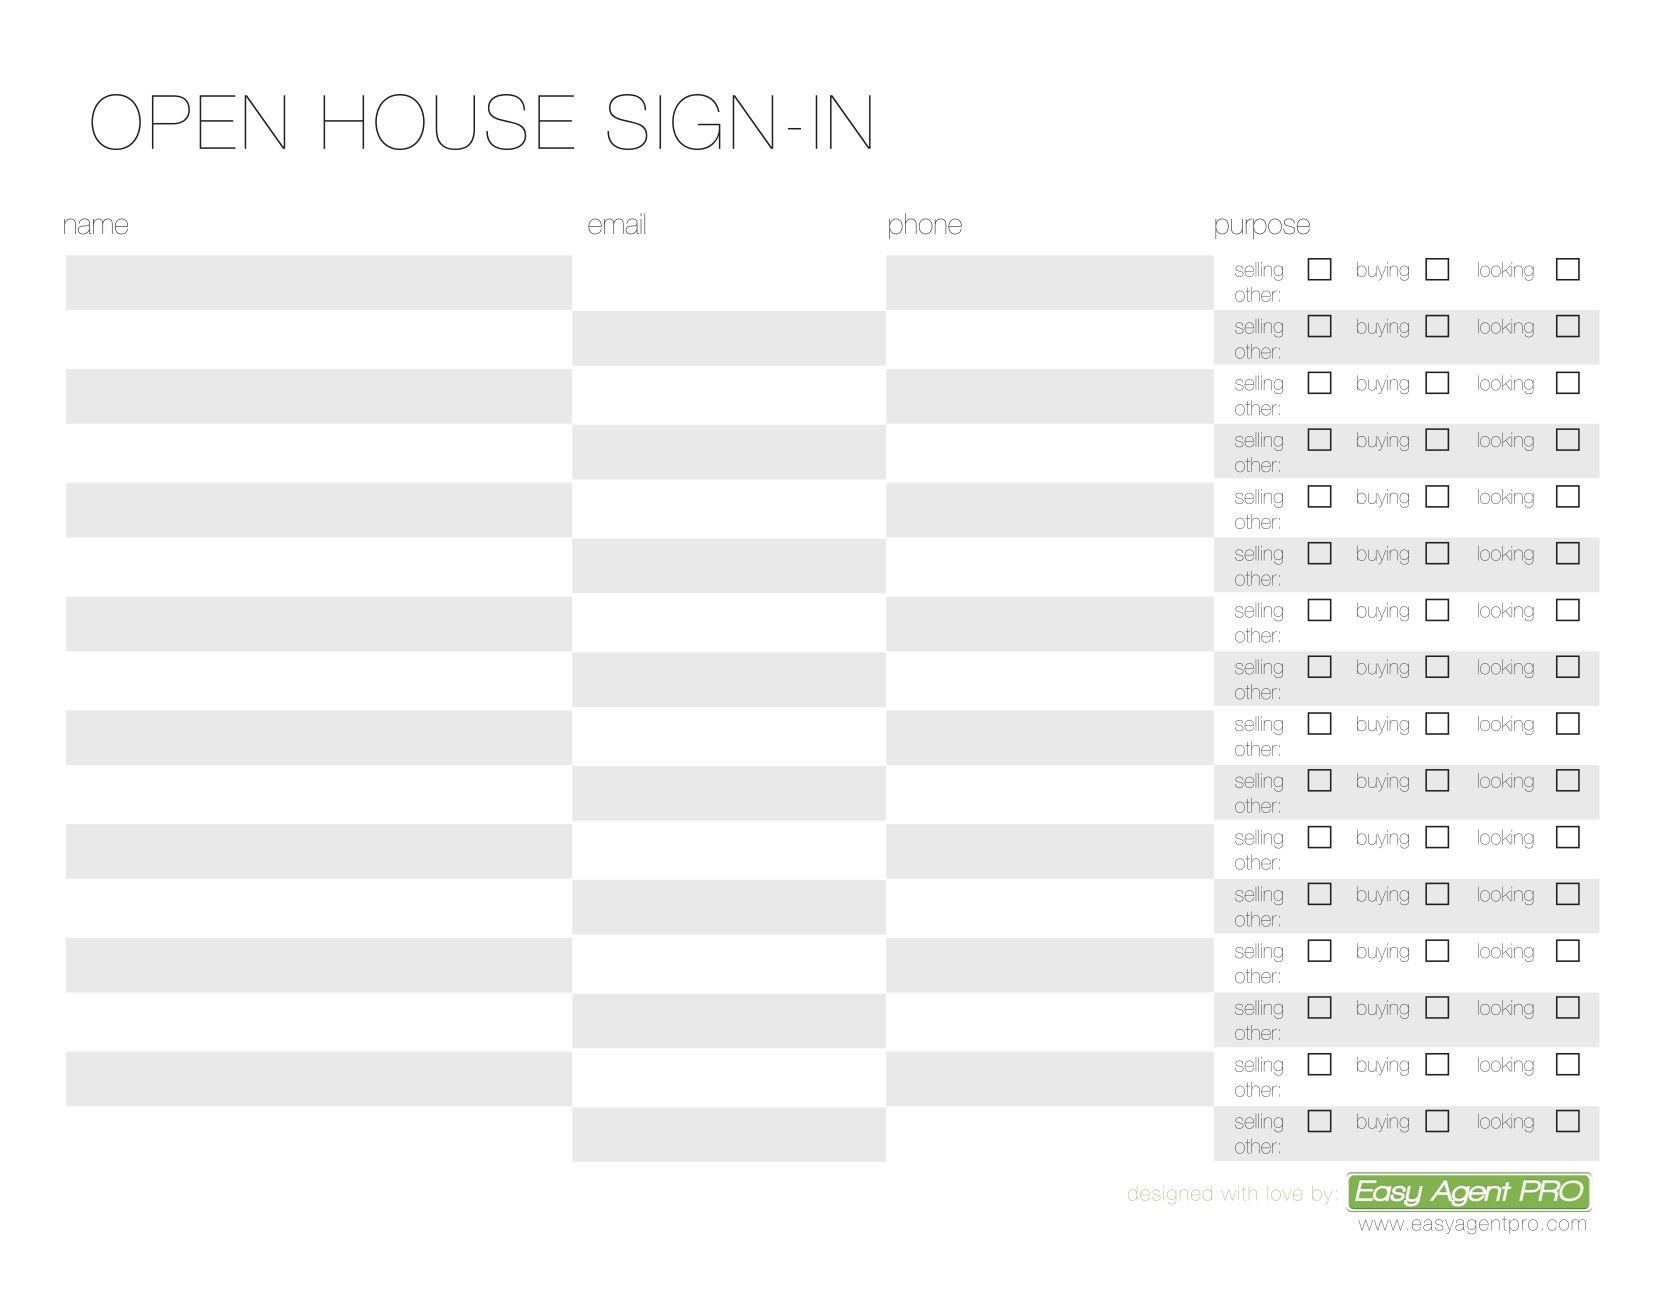 Open House Sign In Sheet Pdf Download  PrintableS For Just About